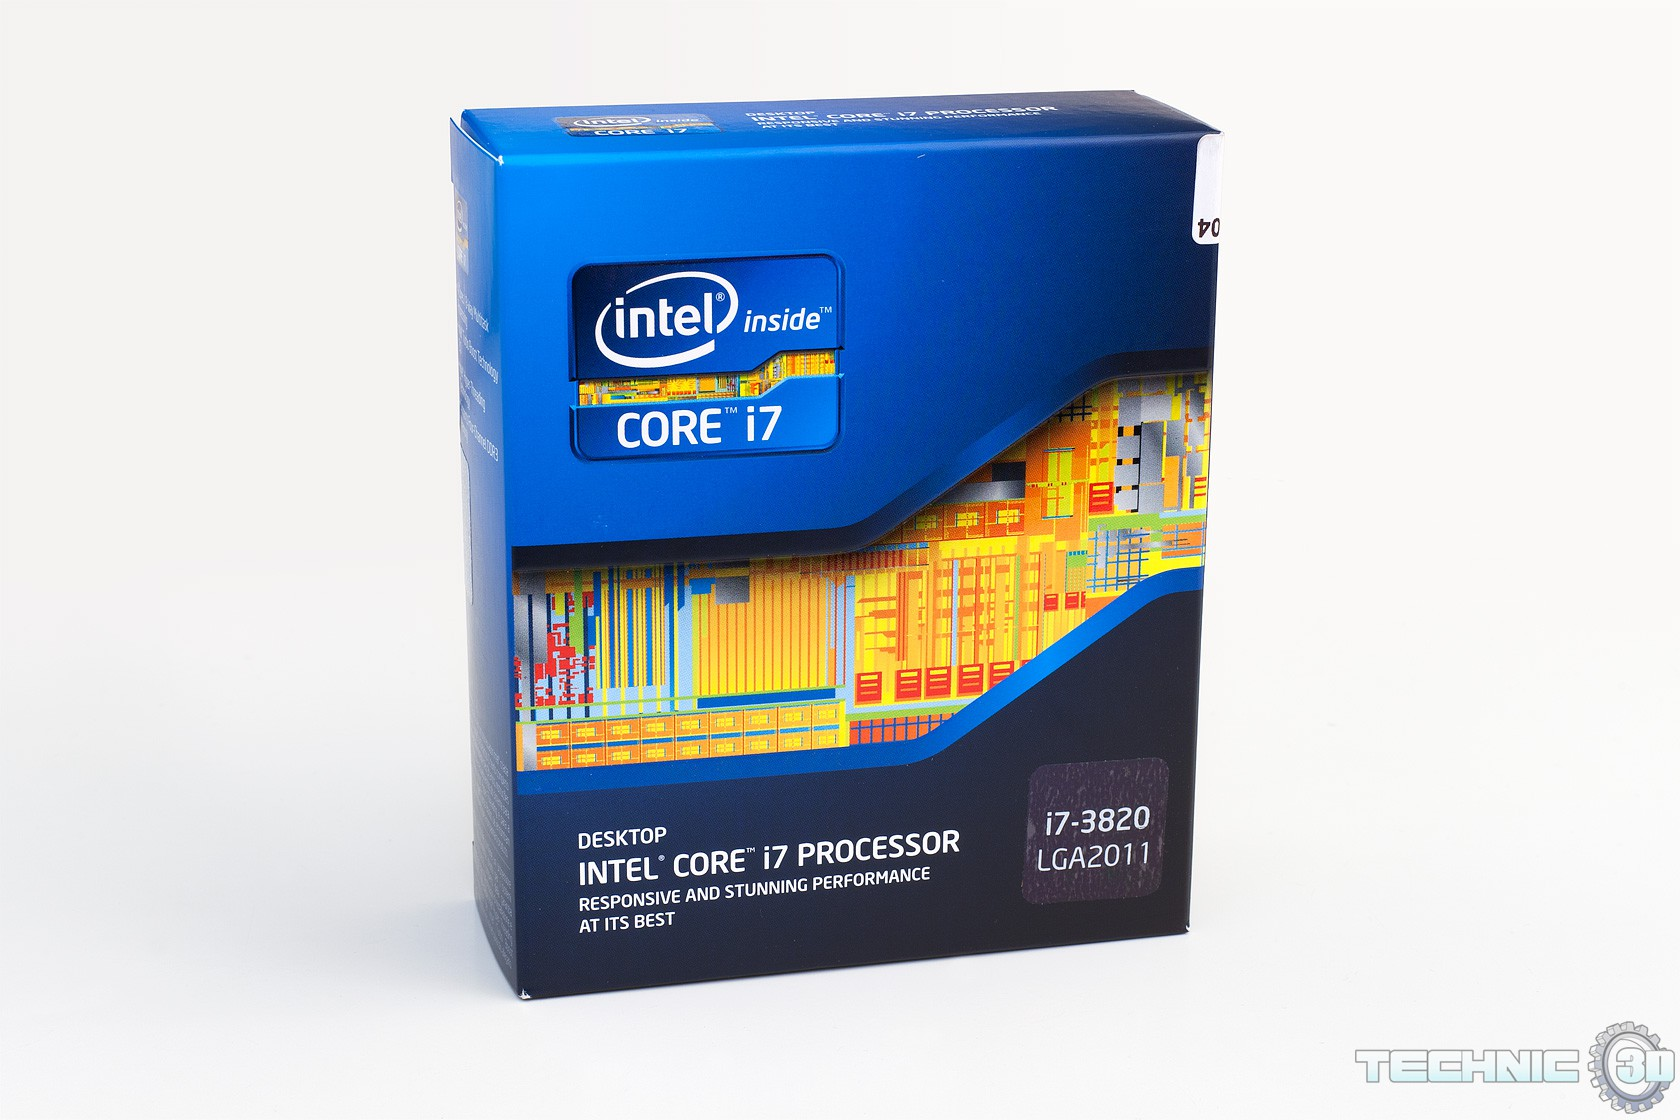 Intel Core i7-3820 Processor (10M Cache, up to 3.80 GHz)